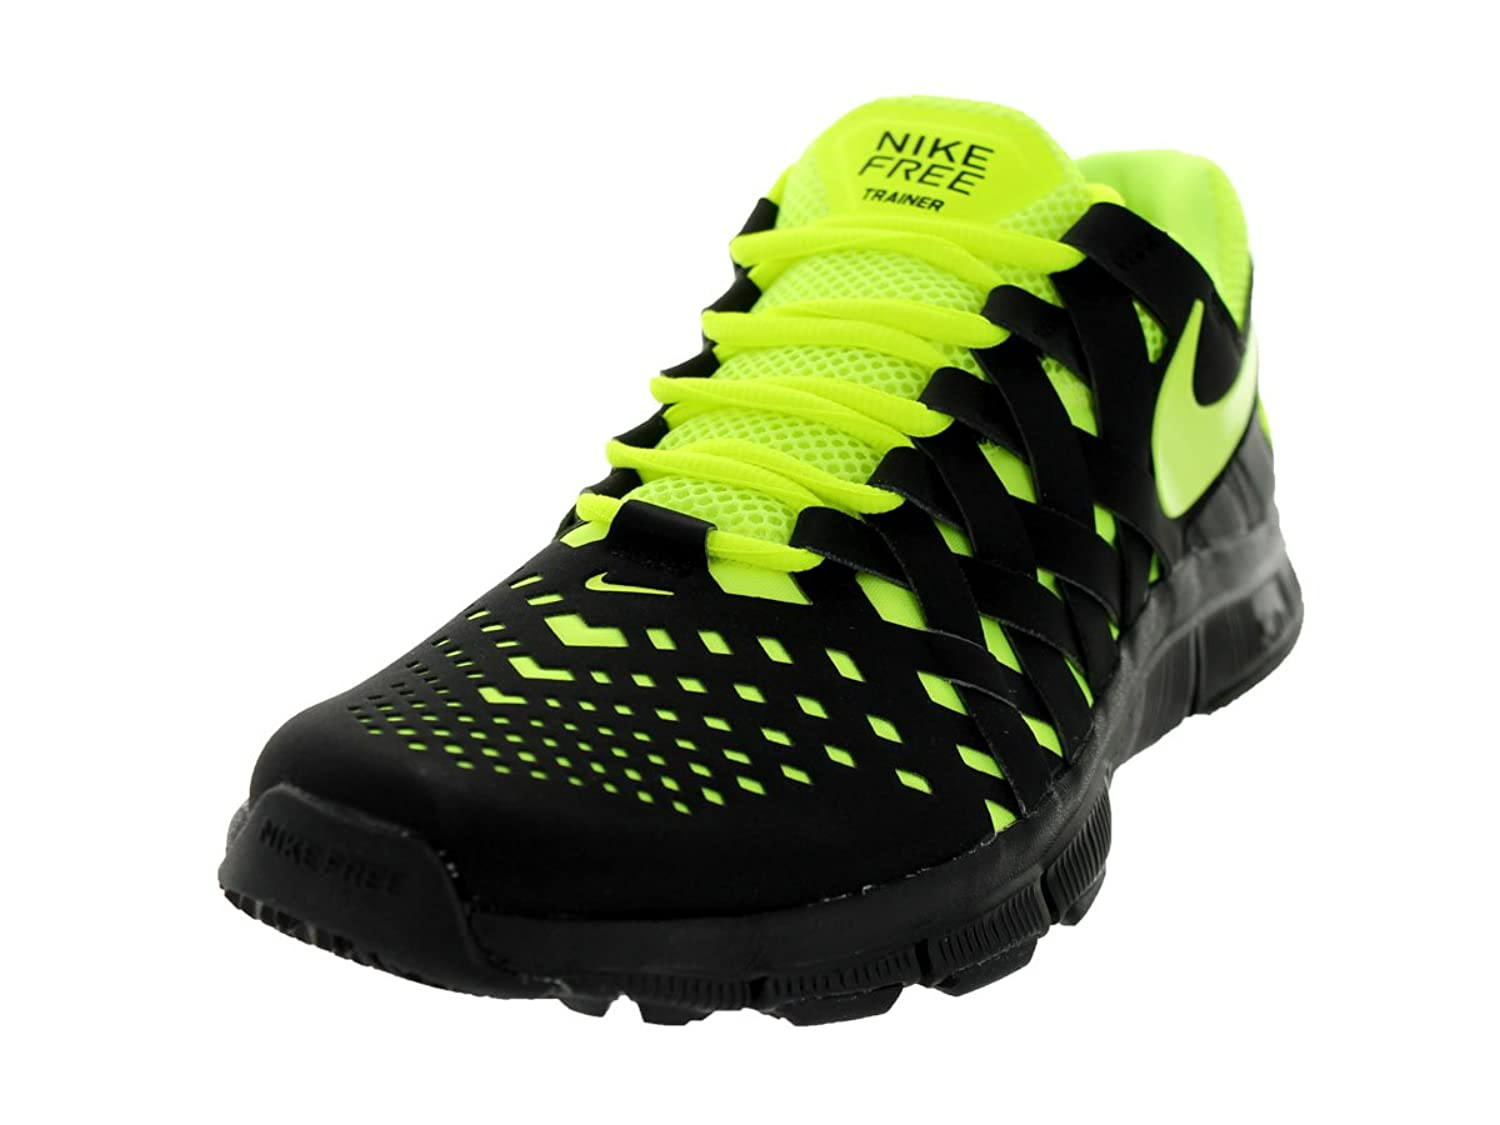 66d7bf466c3 nike free trainer 5.0 mens running trainers 579809 002 sneakers shoes black  volt (uk 8.5 us 9.5 eu 43)  Amazon.co.uk  Shoes   Bags